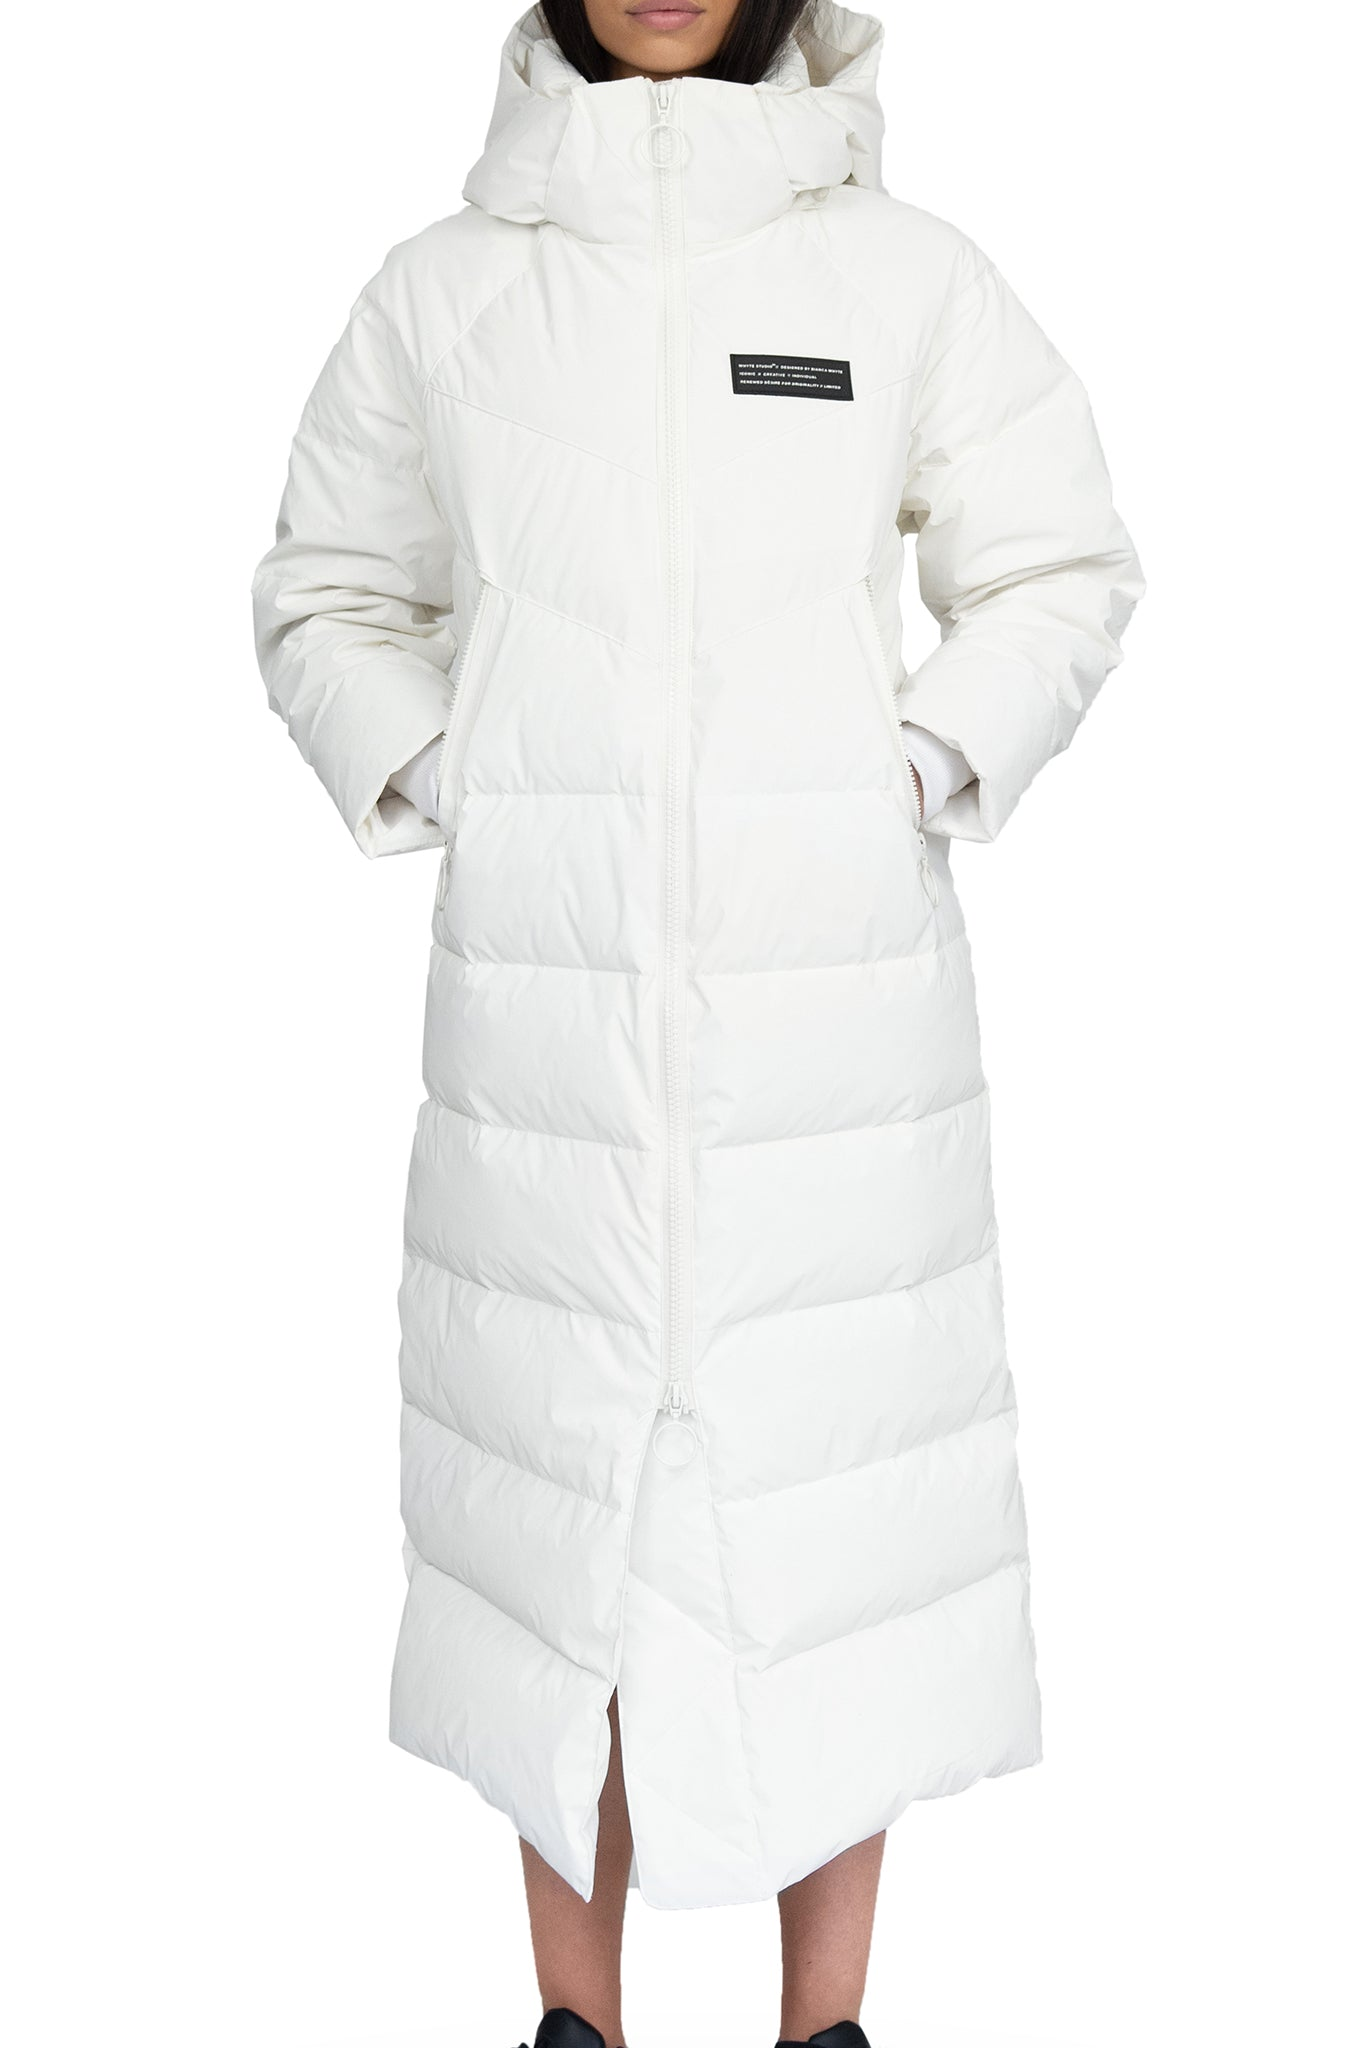 Whyte Studio Long White Puffer Coat